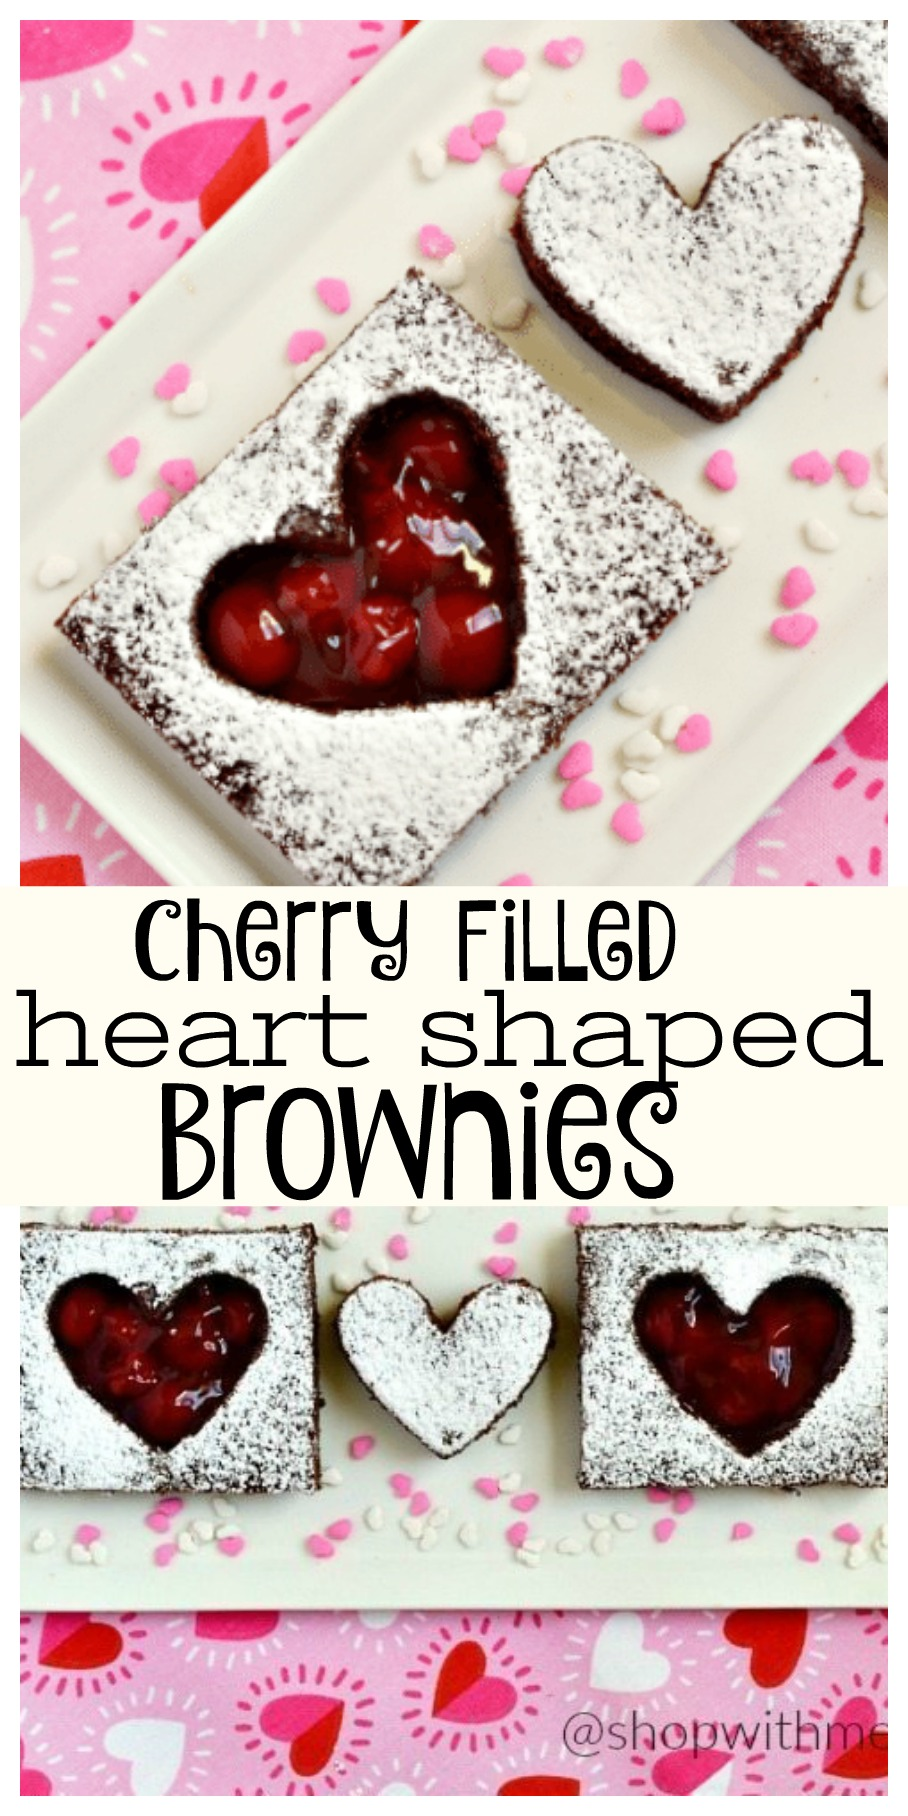 Heart Shaped Brownies With Cherry Filling